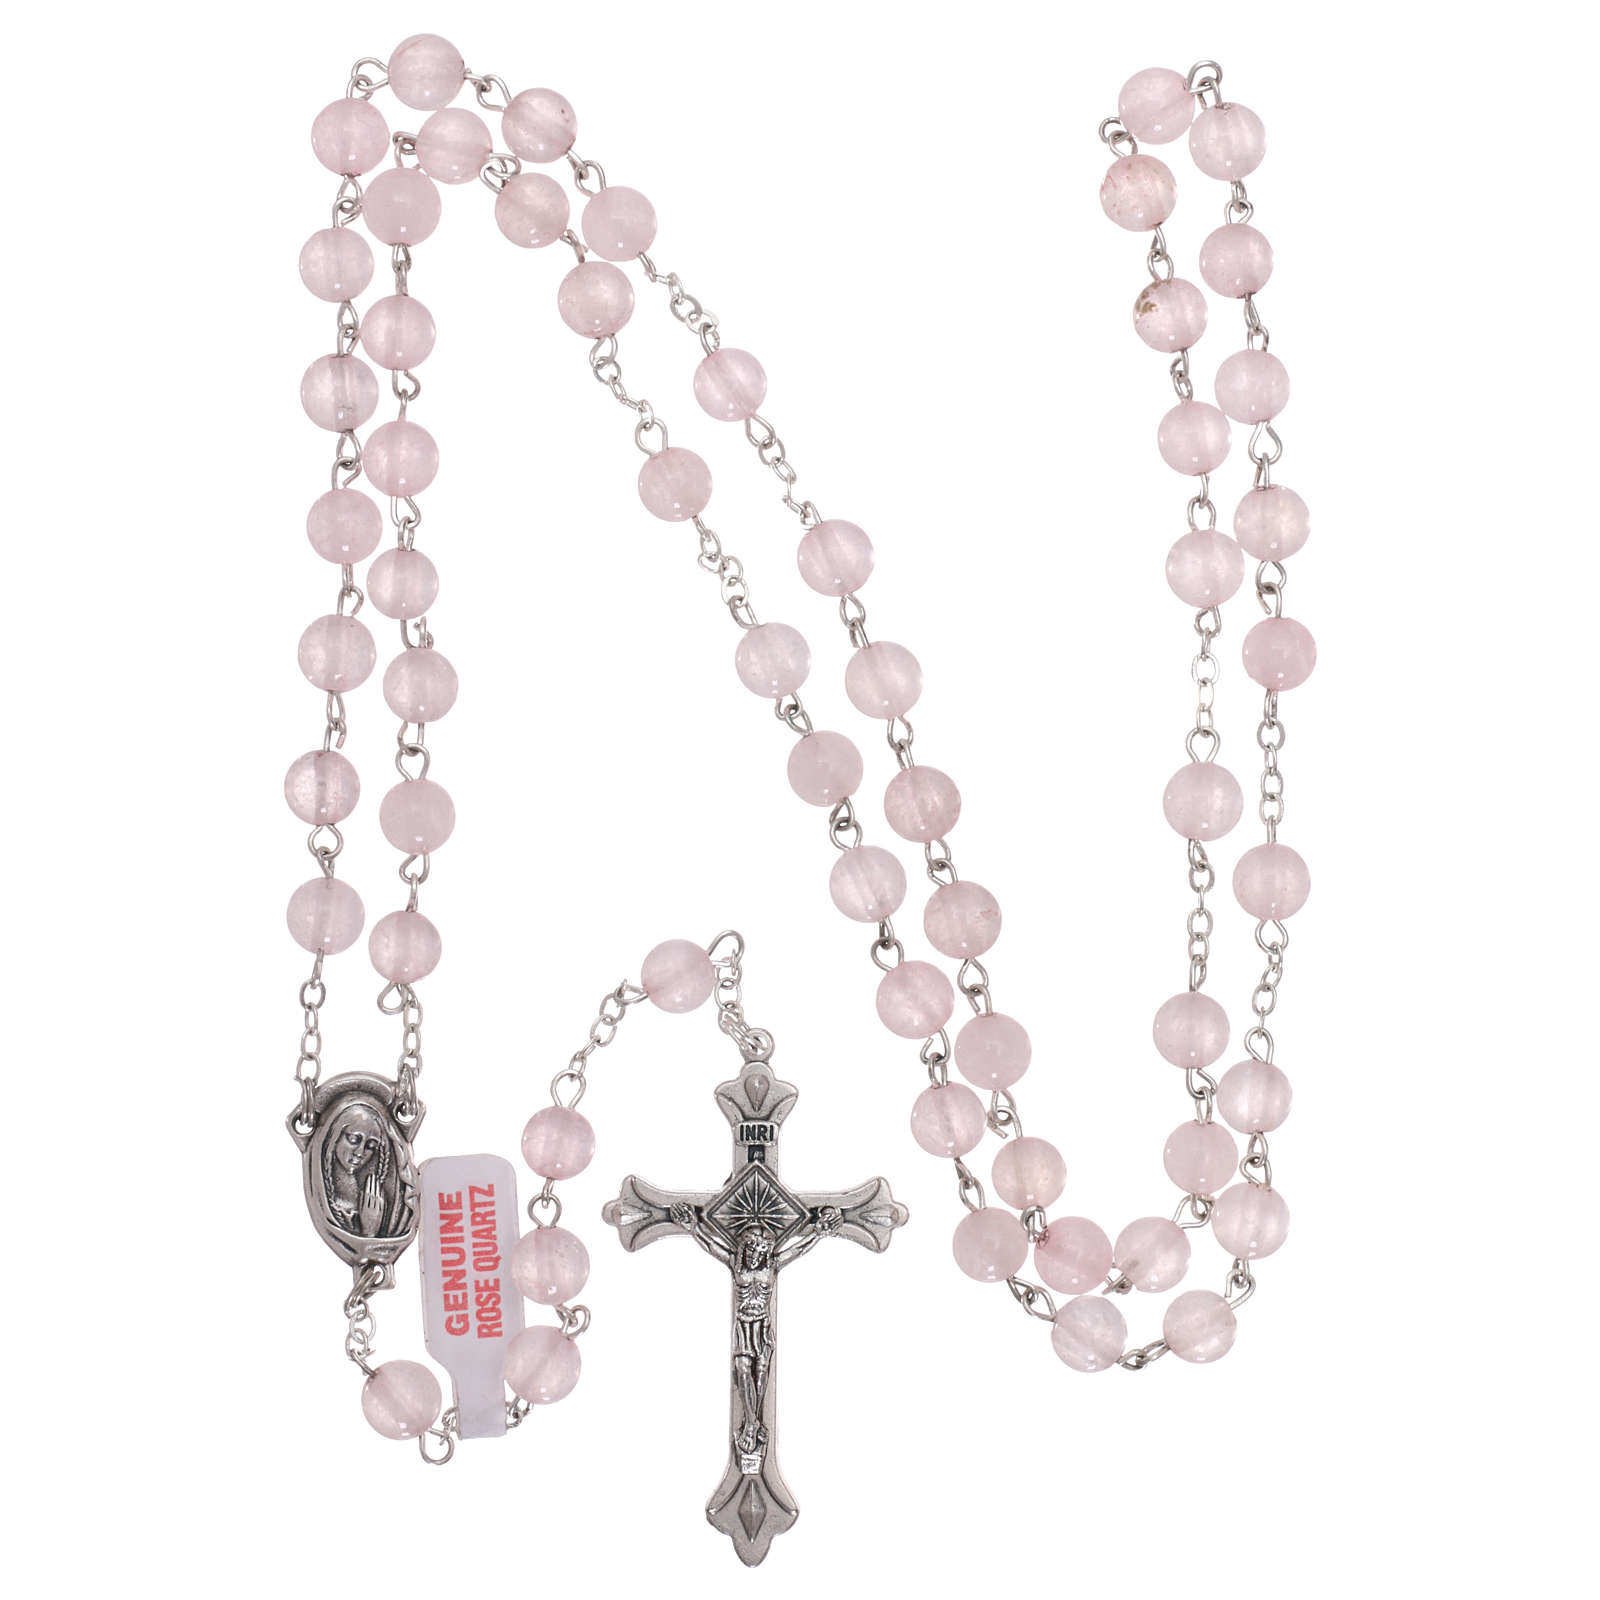 Rosary with pink quartz beads 6 mm 4